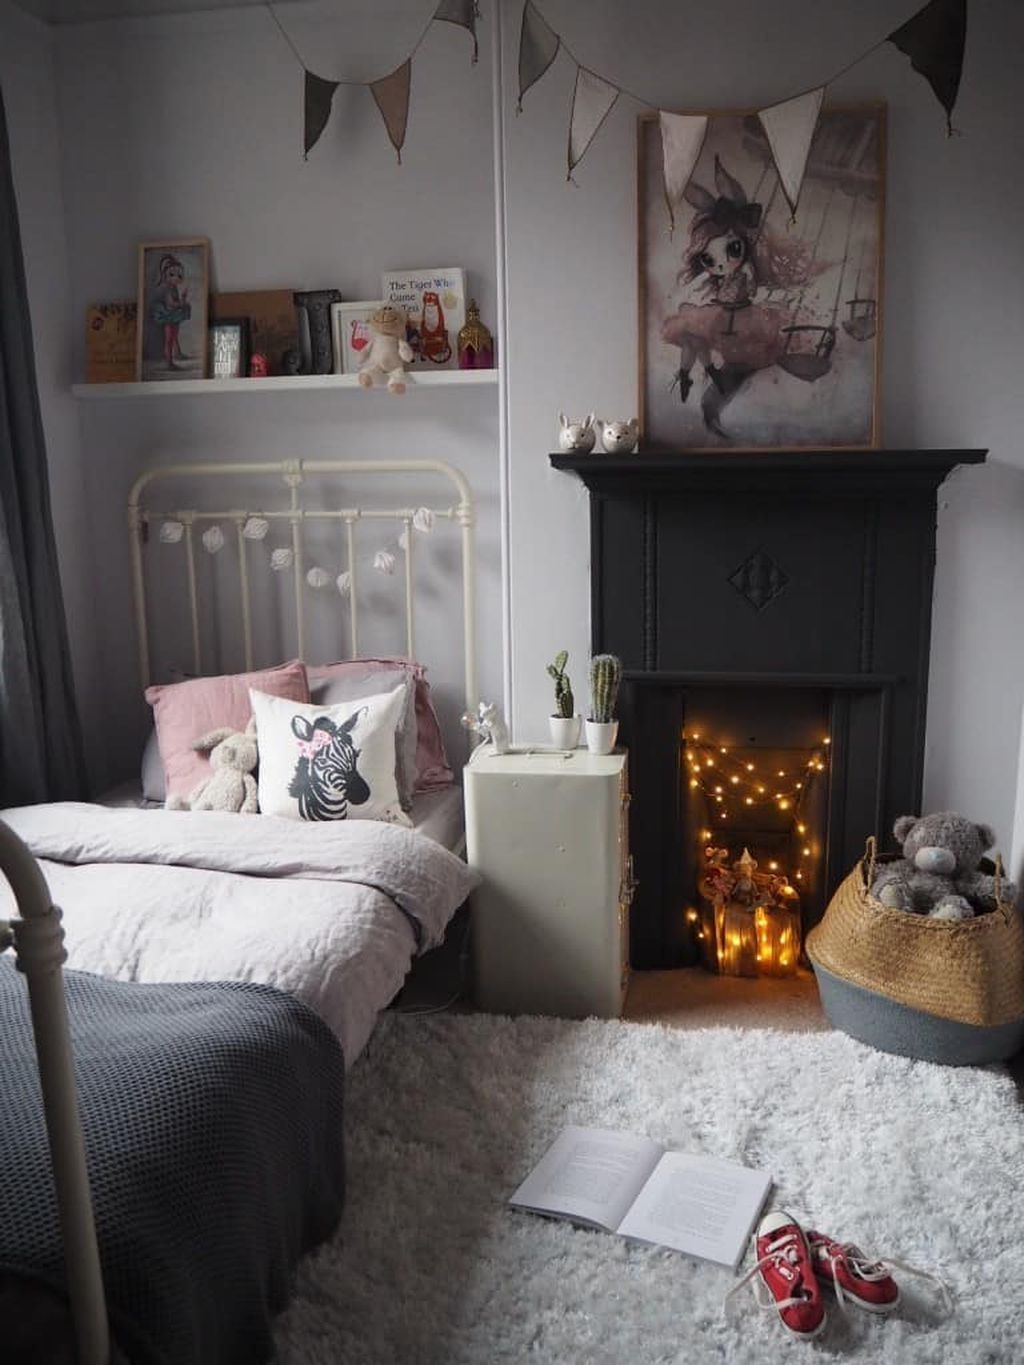 Pin On Bedroom Ideas And Inspiration